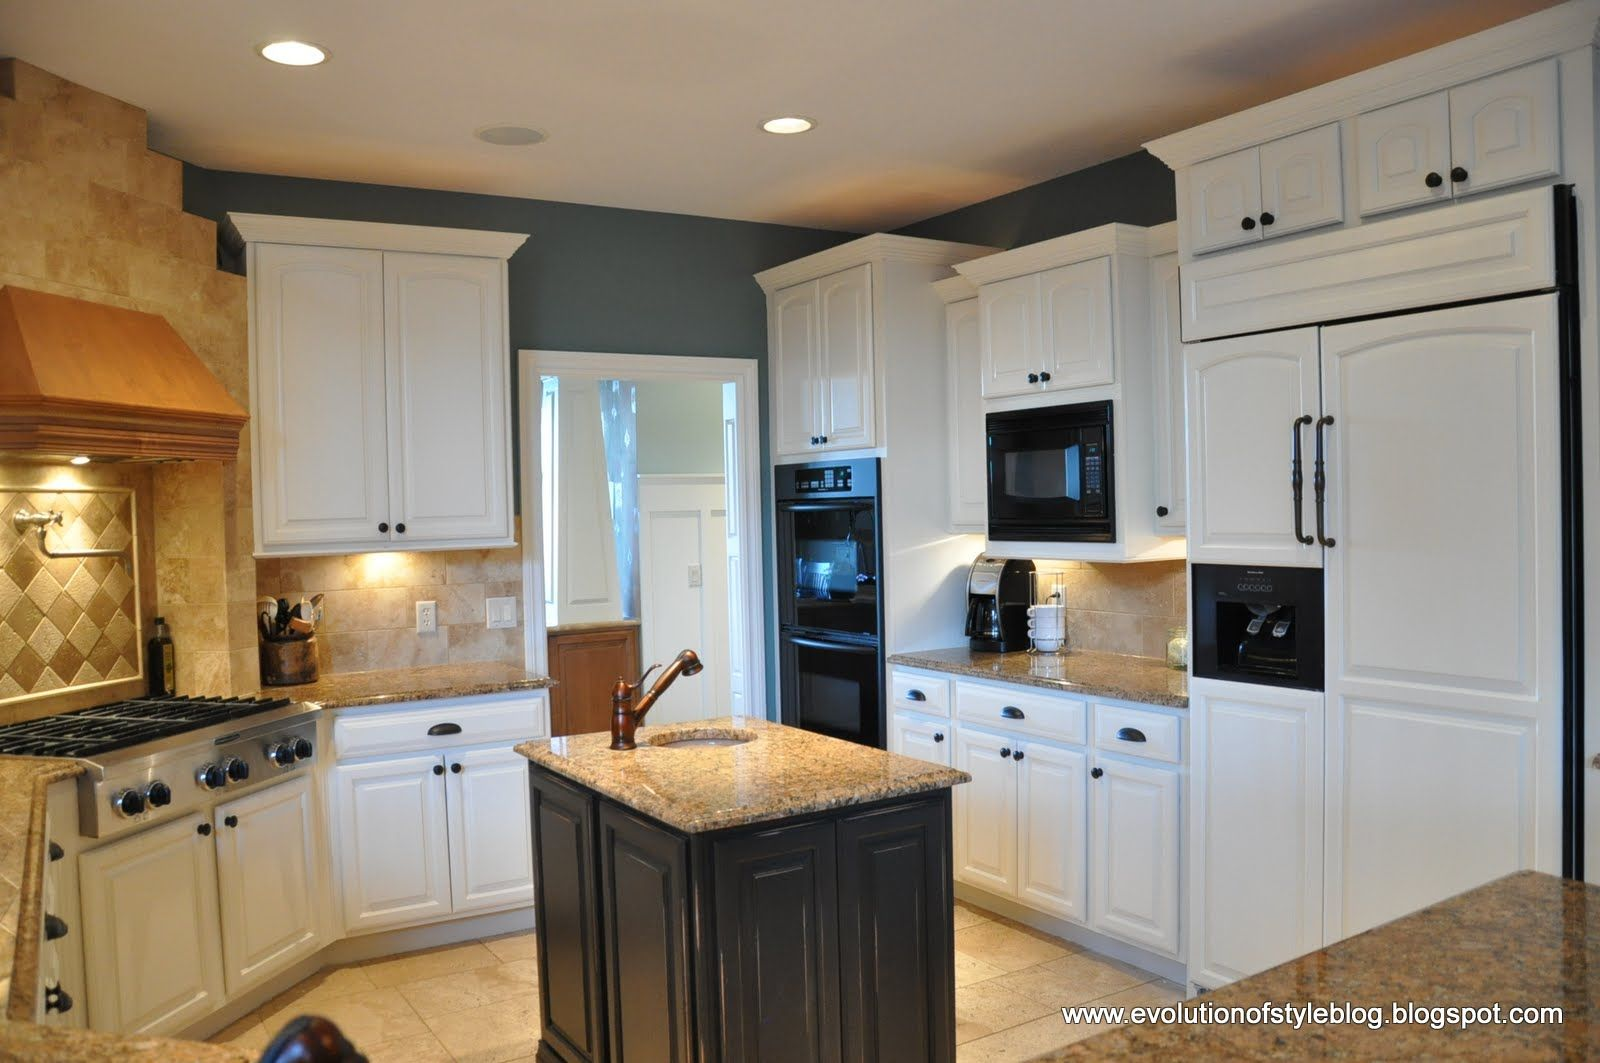 Spray paint for kitchen cupboards  How to Paint Your Kitchen Cabinets like a pro  Painting